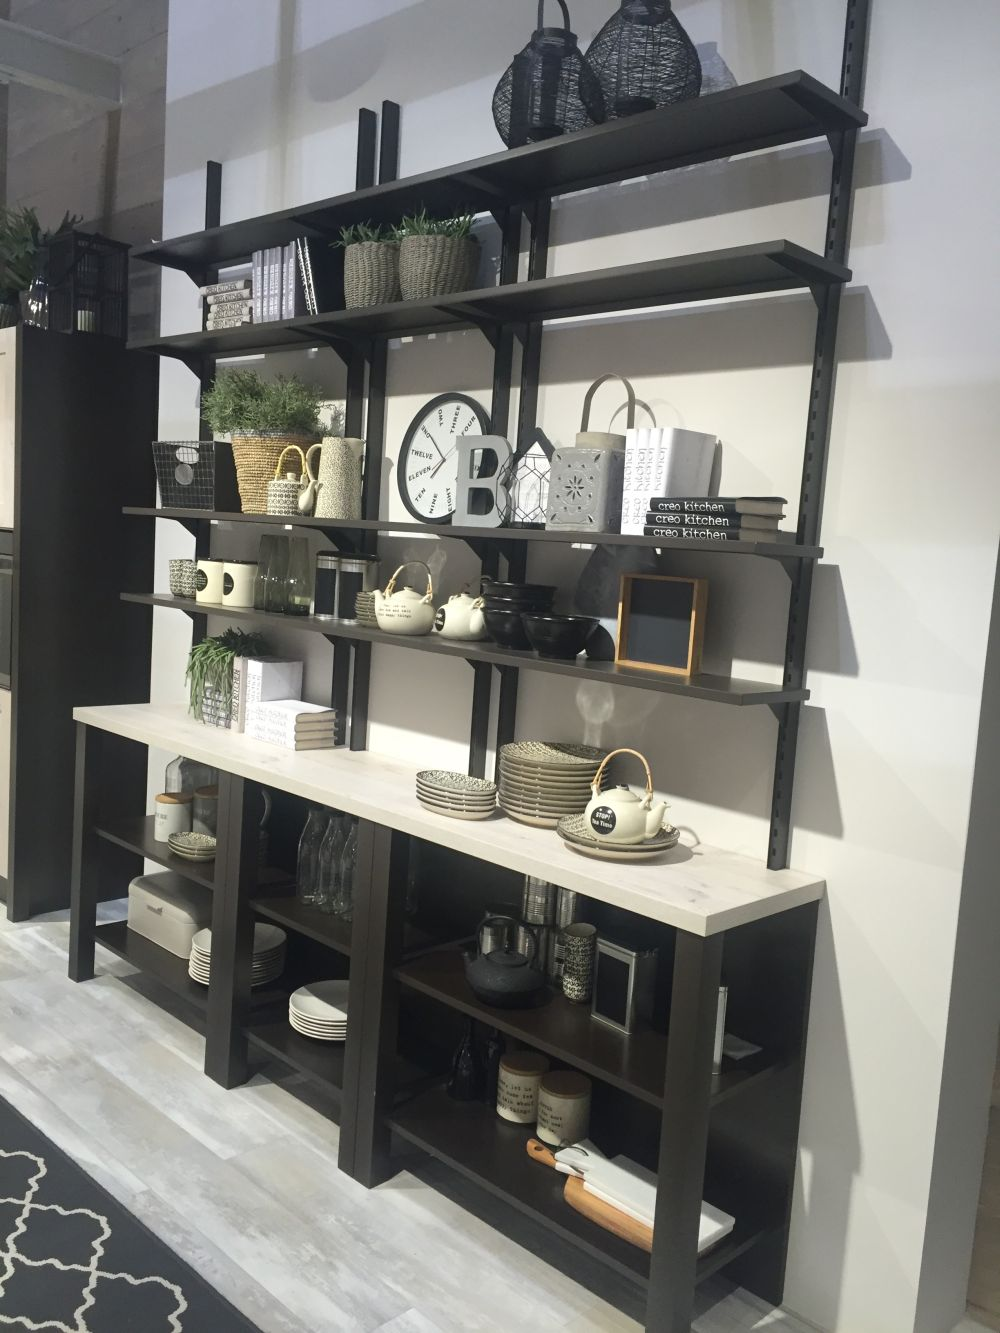 Open kitchen shelving and the flexibility that comes with it Open shelving